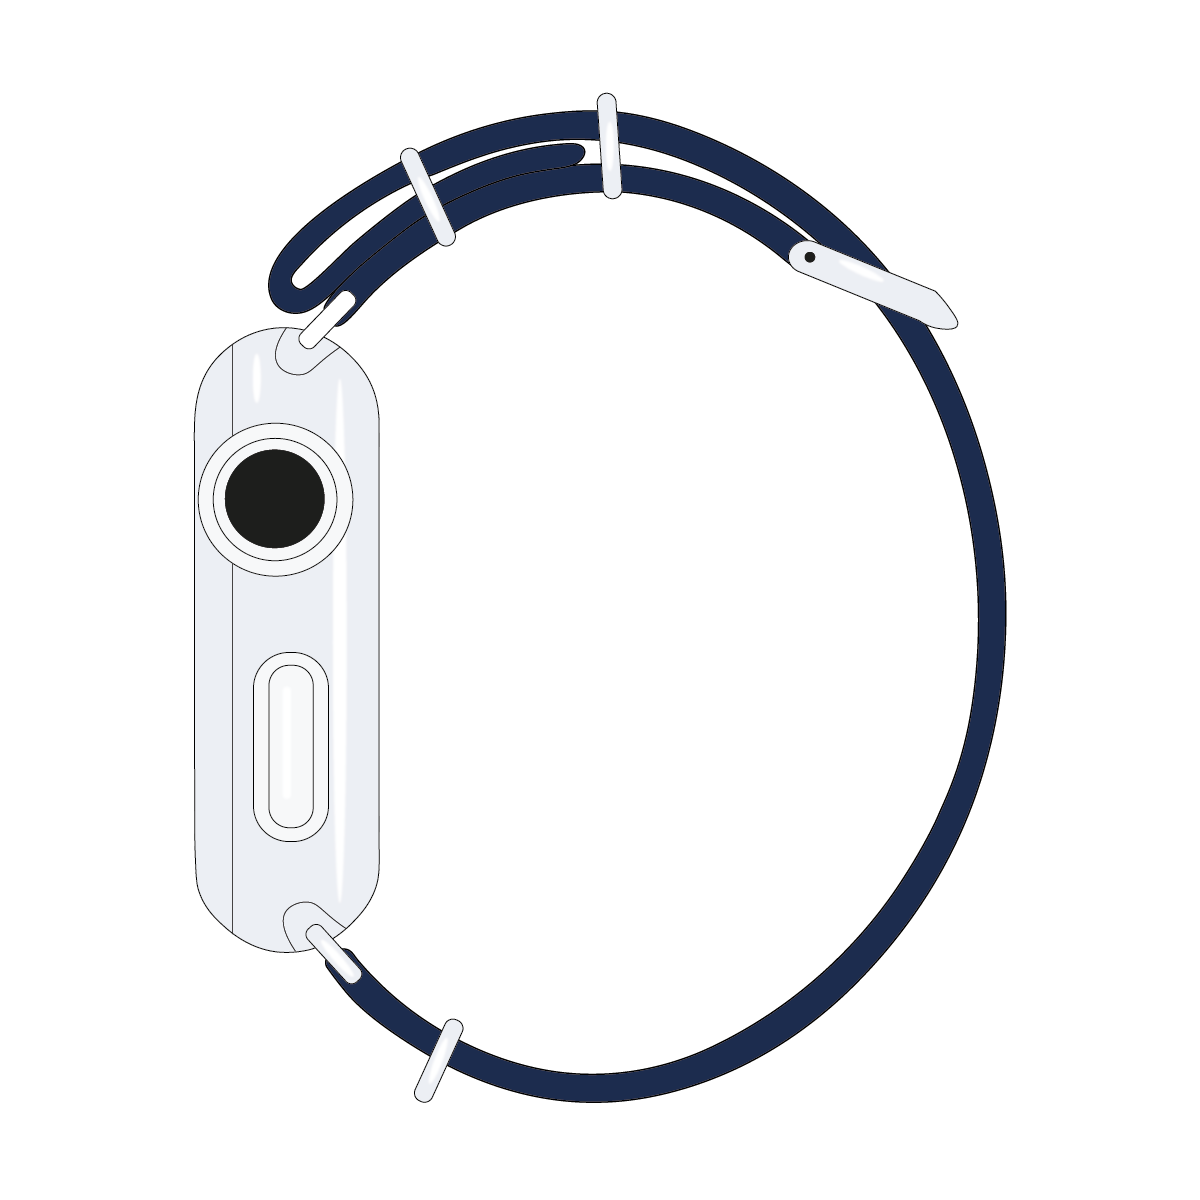 Cinturino Nato Apple Watch in nylon blu scuro | Roobaya – Bild 4